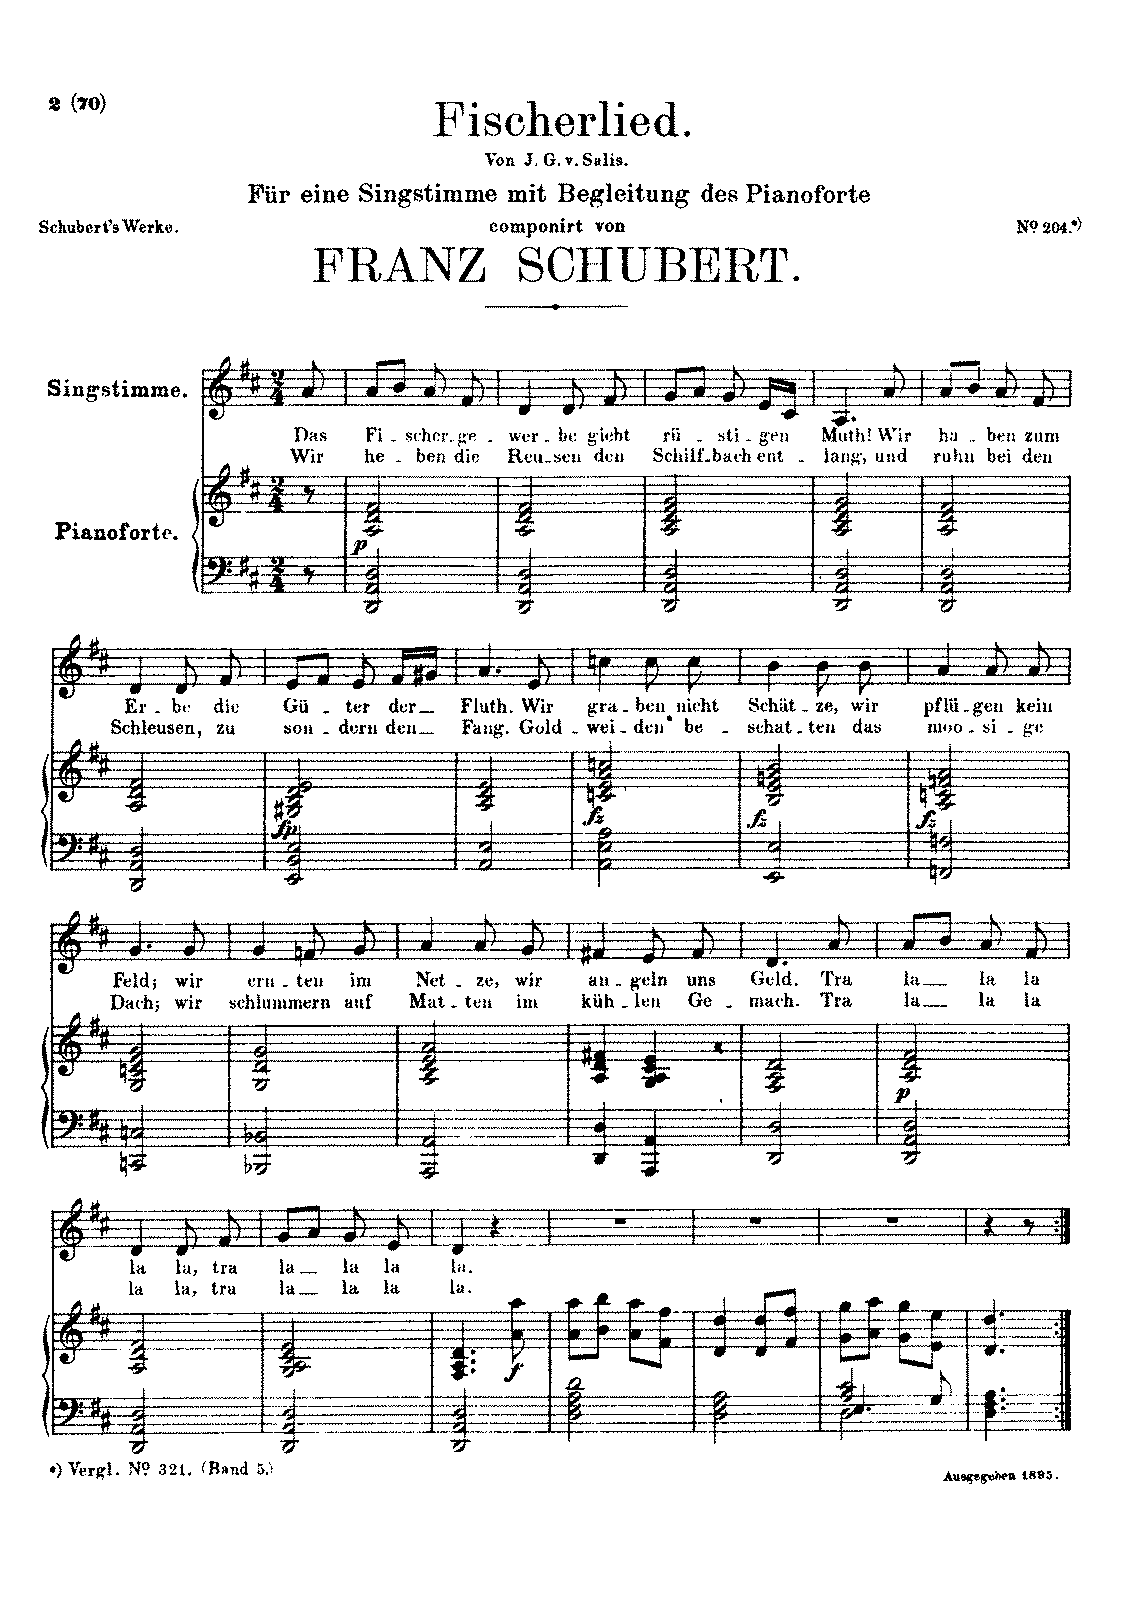 SchubertD351 Fischerlied 1st version.pdf